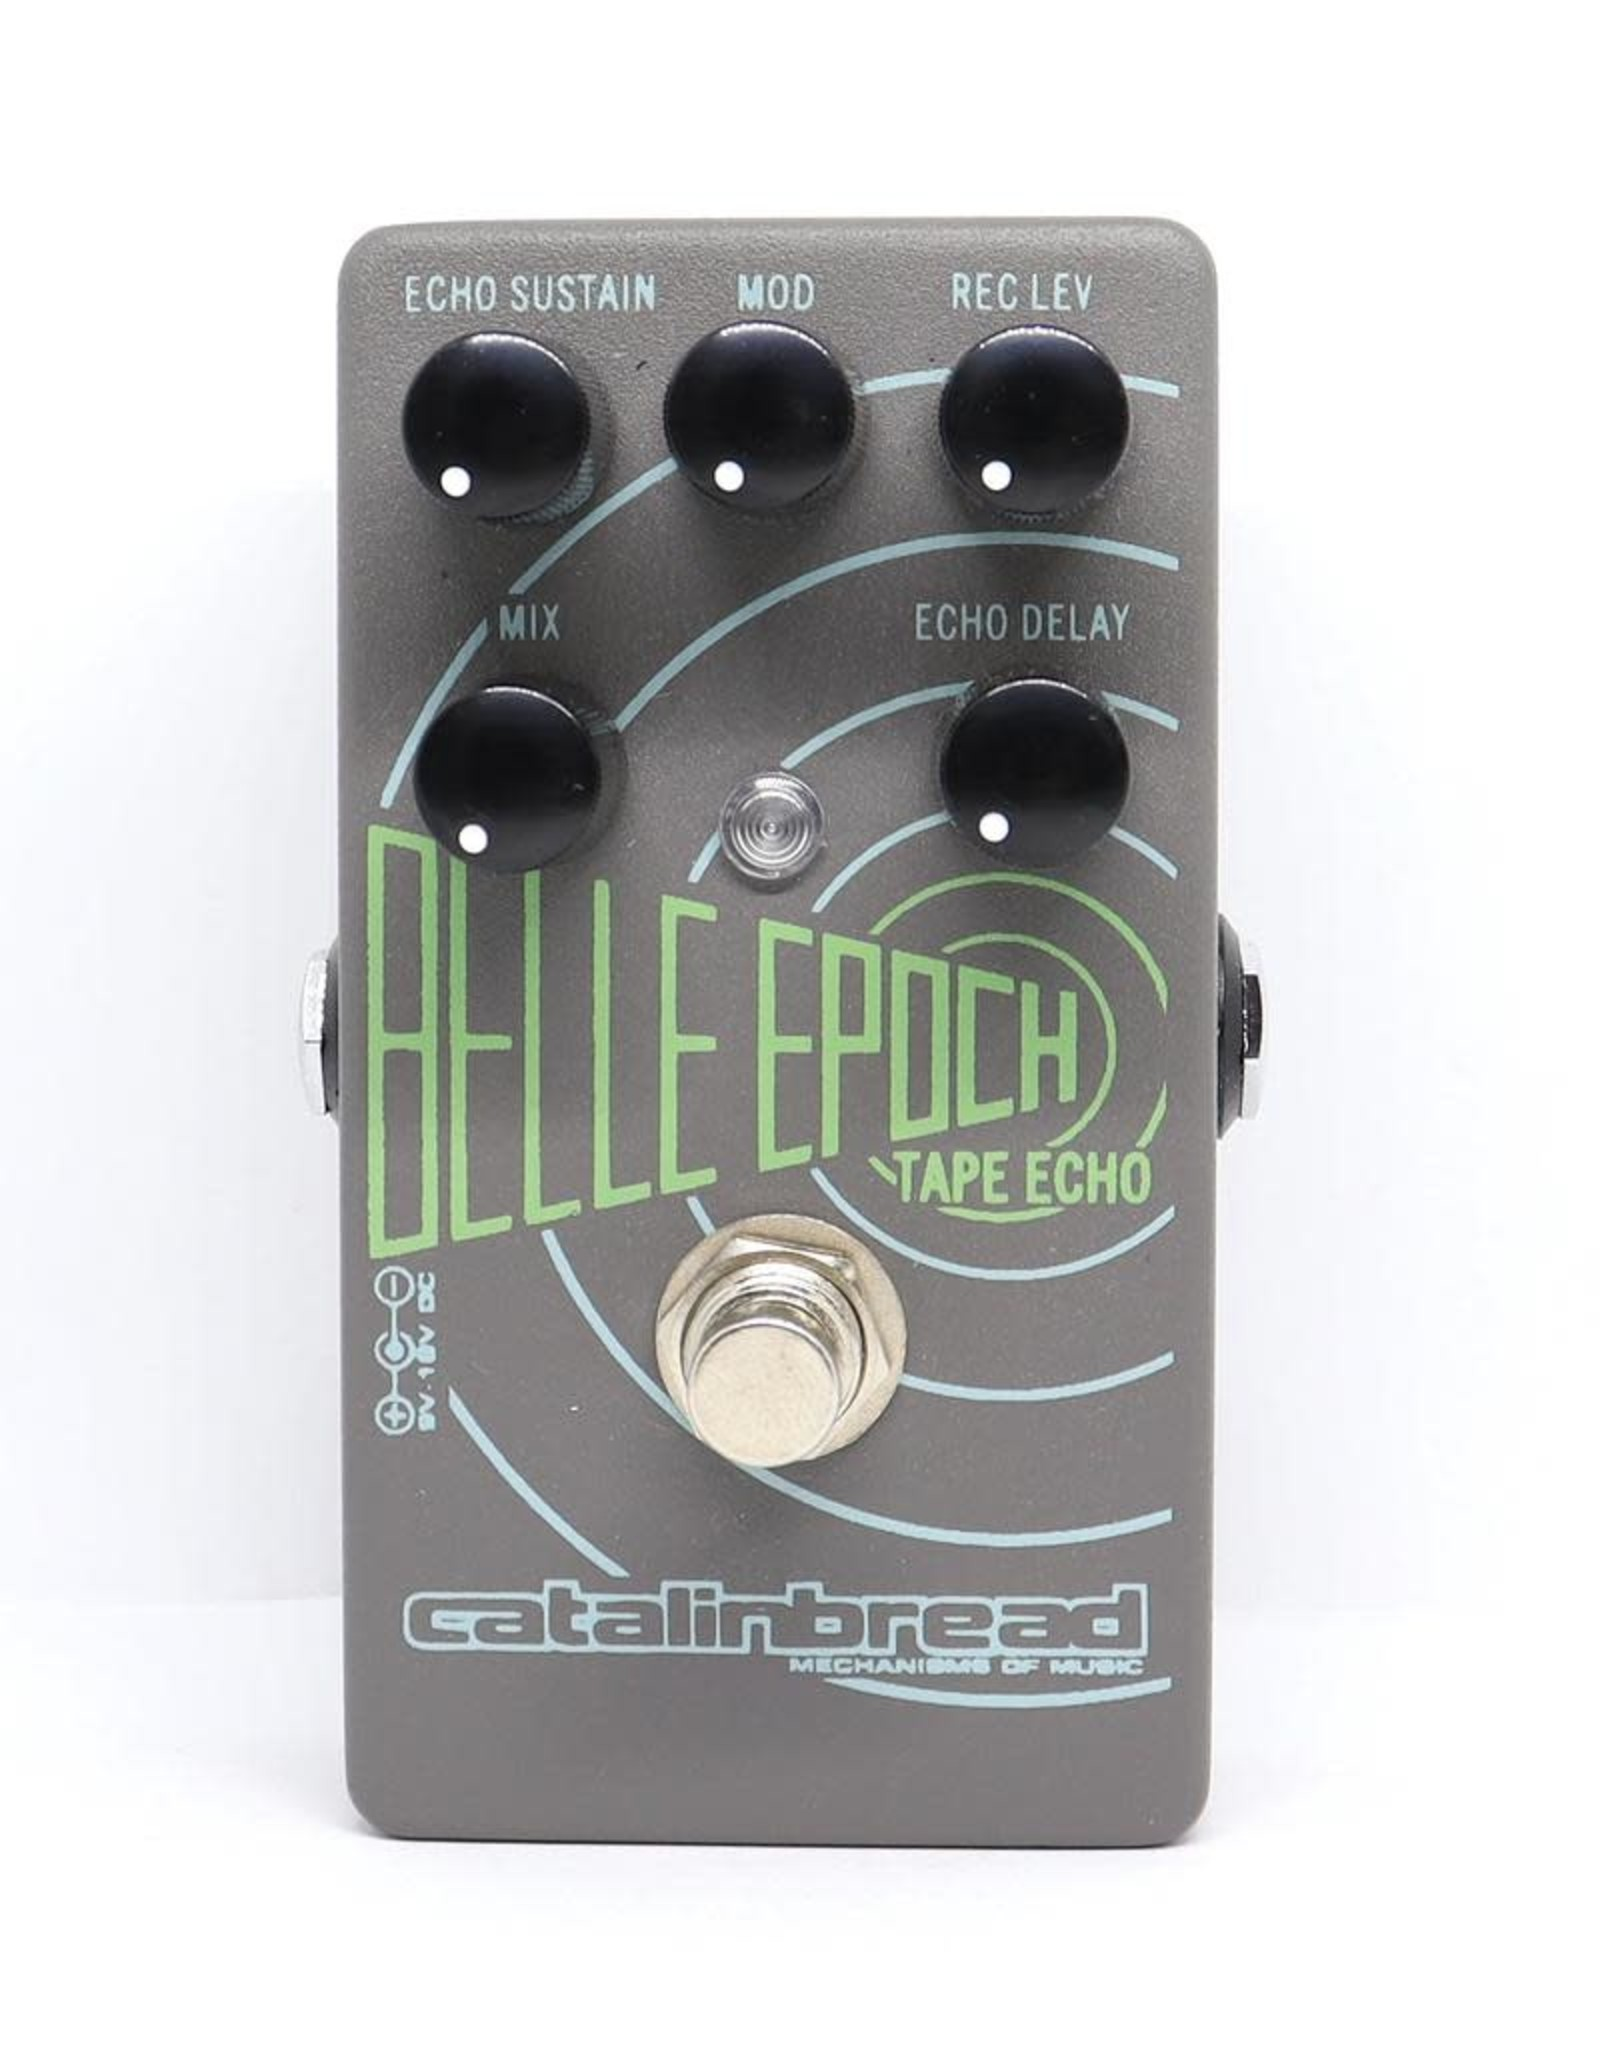 Catalinbread Catalinbread BELLE EPOCH® (EP3 tape echo emulation)